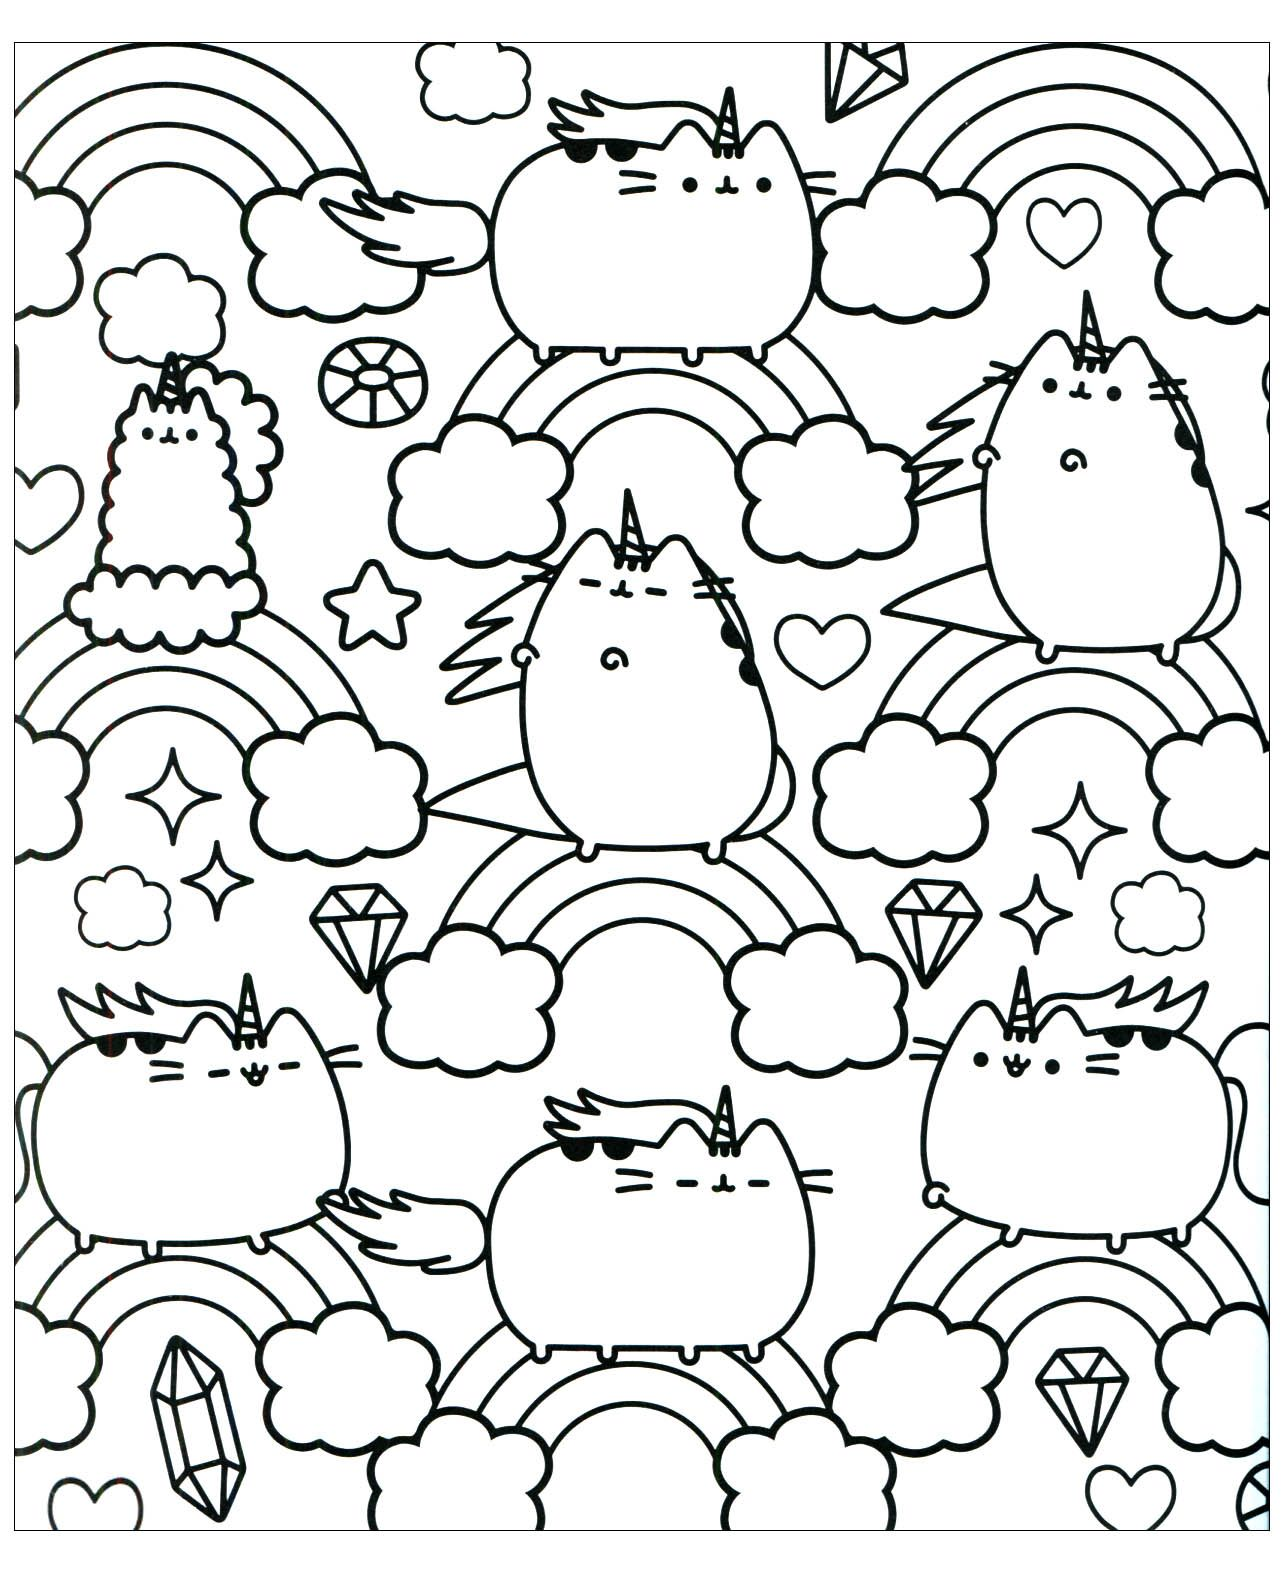 Kawaii Pusheen The Cat Smartphone Coloring Sheet Cat Coloring Page Coloring Pages For Girls Coloring Pages